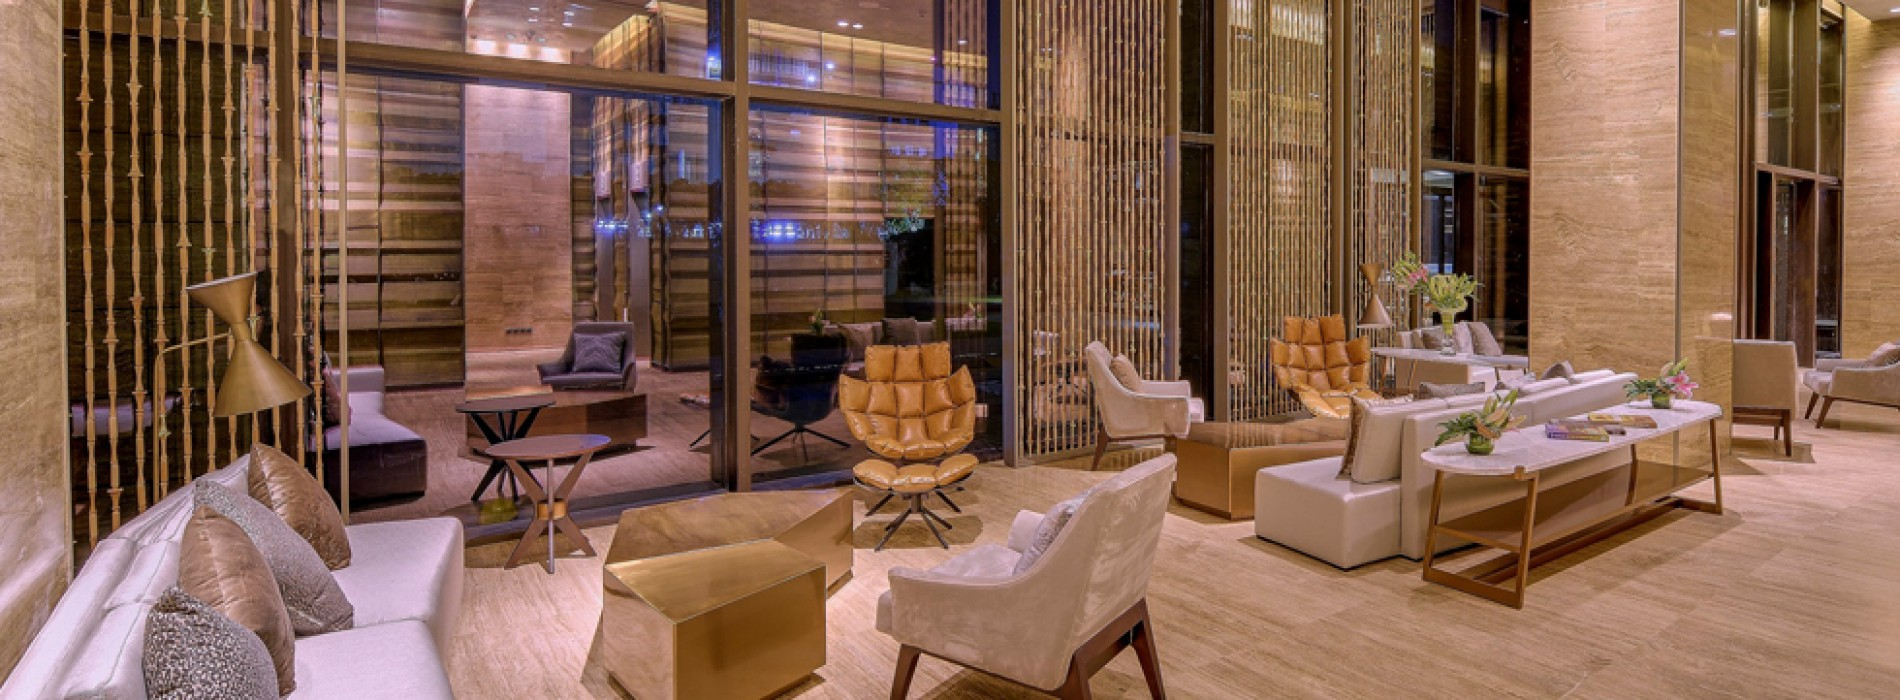 The Den, a state of the art luxury hotel for millennials and globetrotter's launches in Bengaluru!